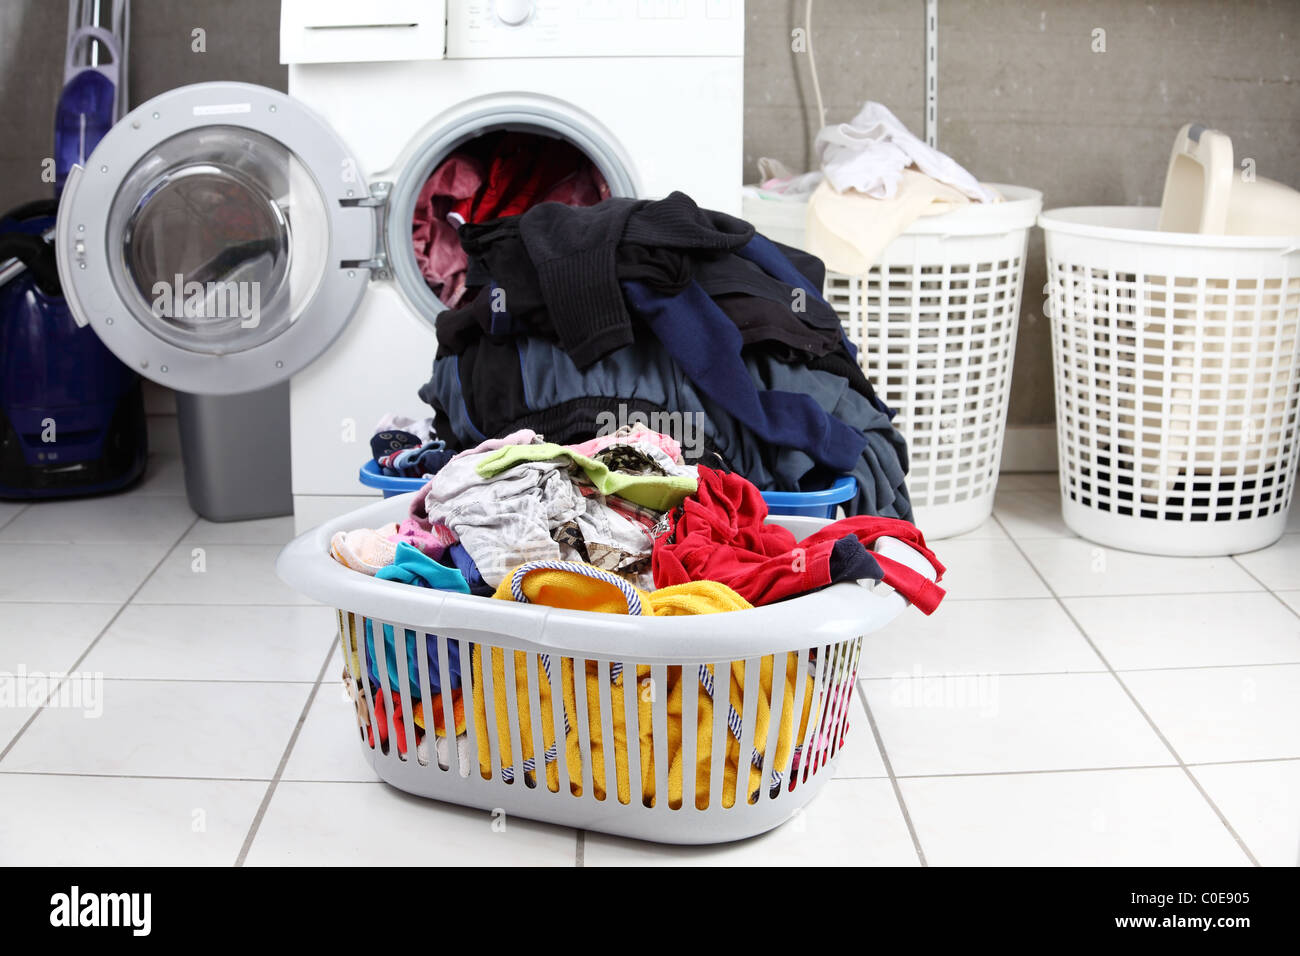 Two baskets of dirty laundry in the washing room - Stock Image